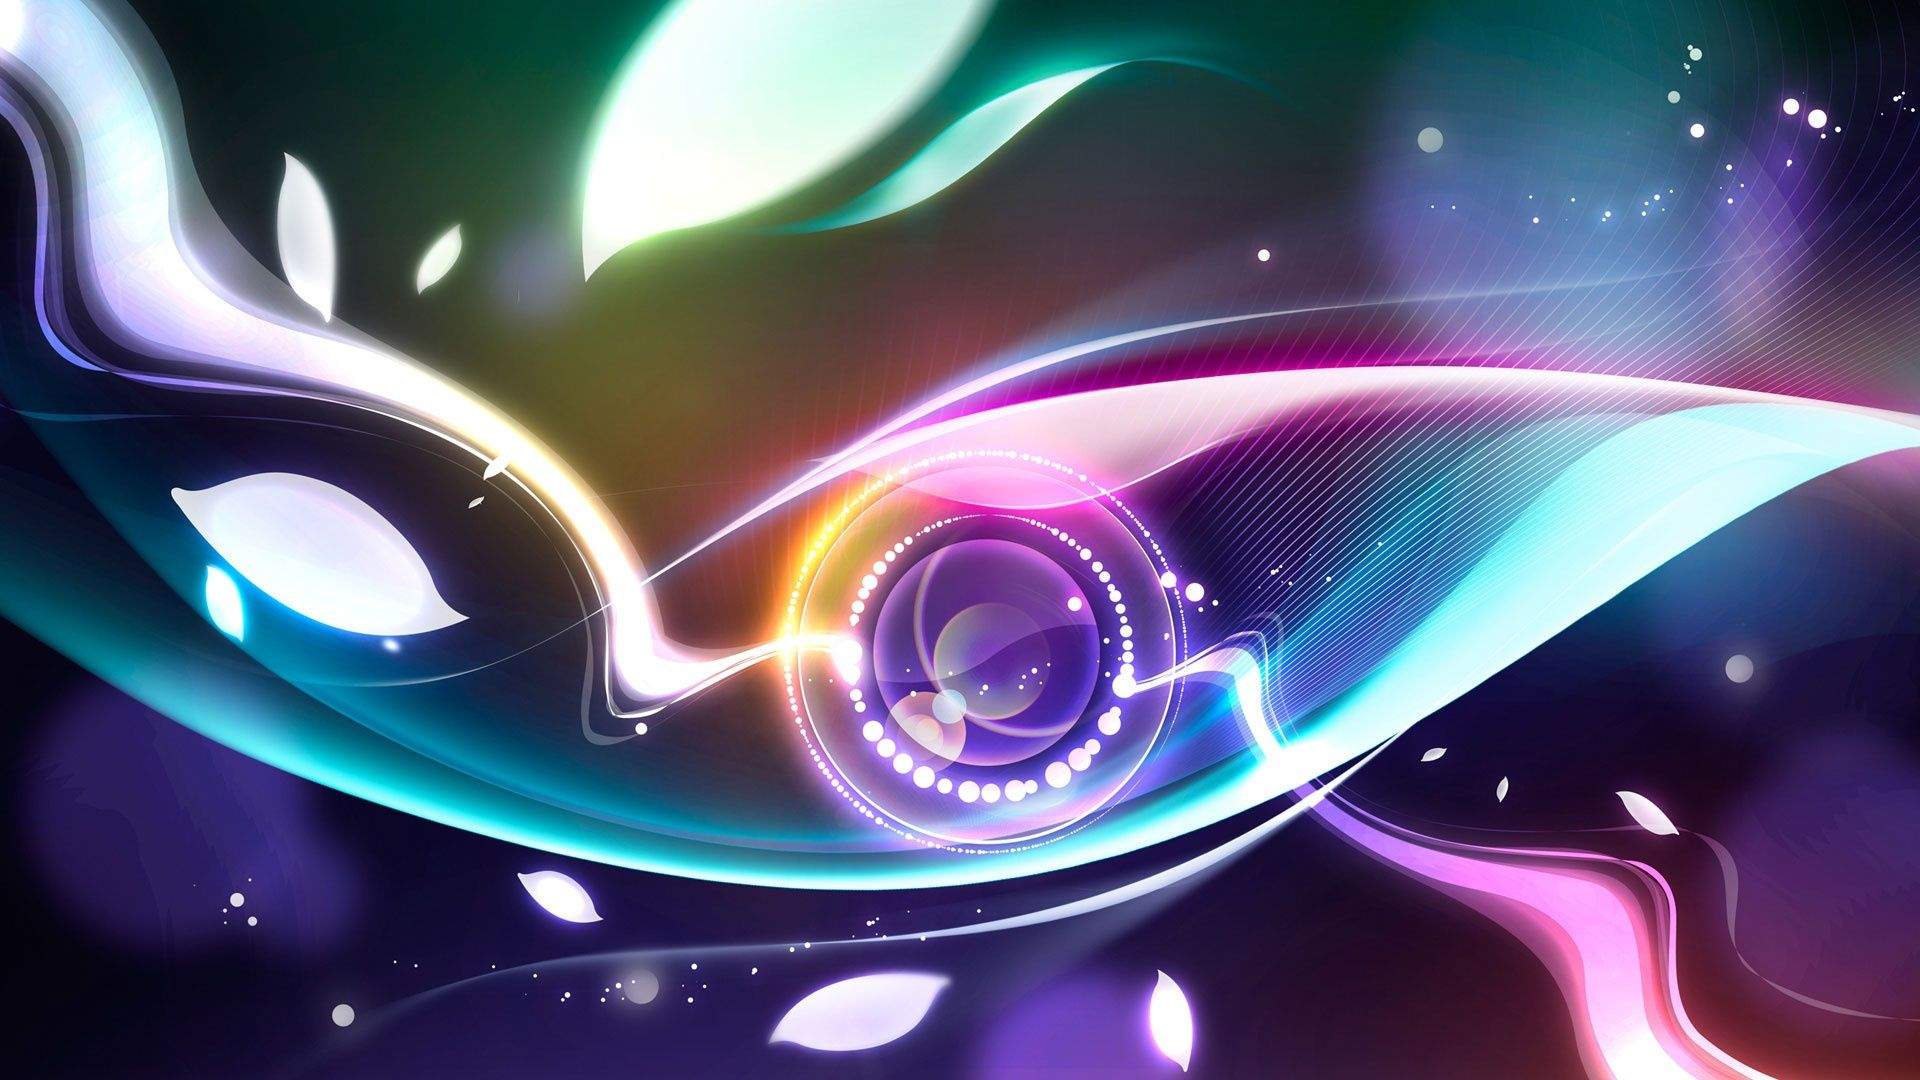 Wallpaper Pc Abstract Eyes